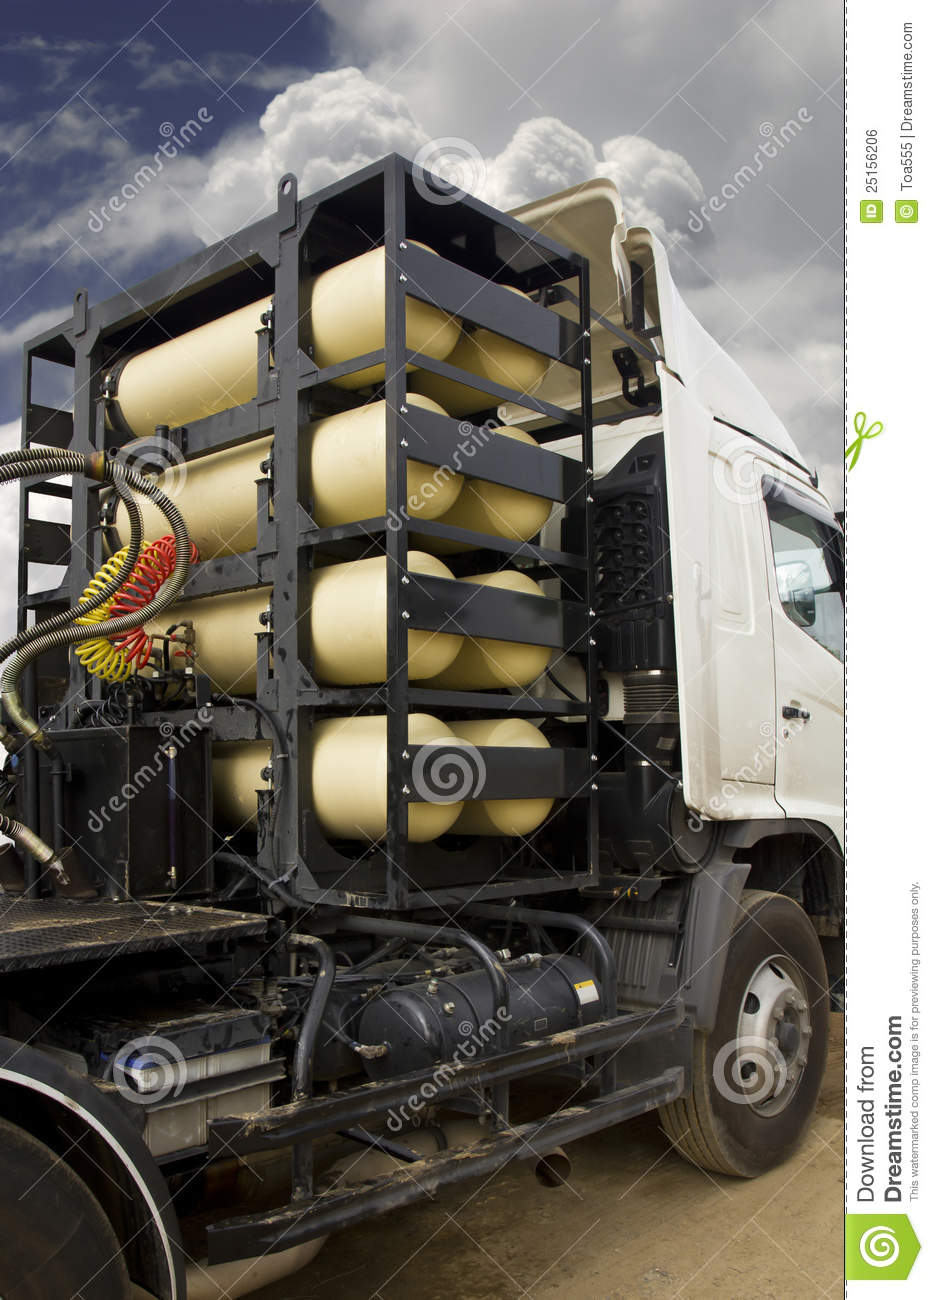 Cng  Ngv Gas Tanks For Heavy Truck Stock Photo